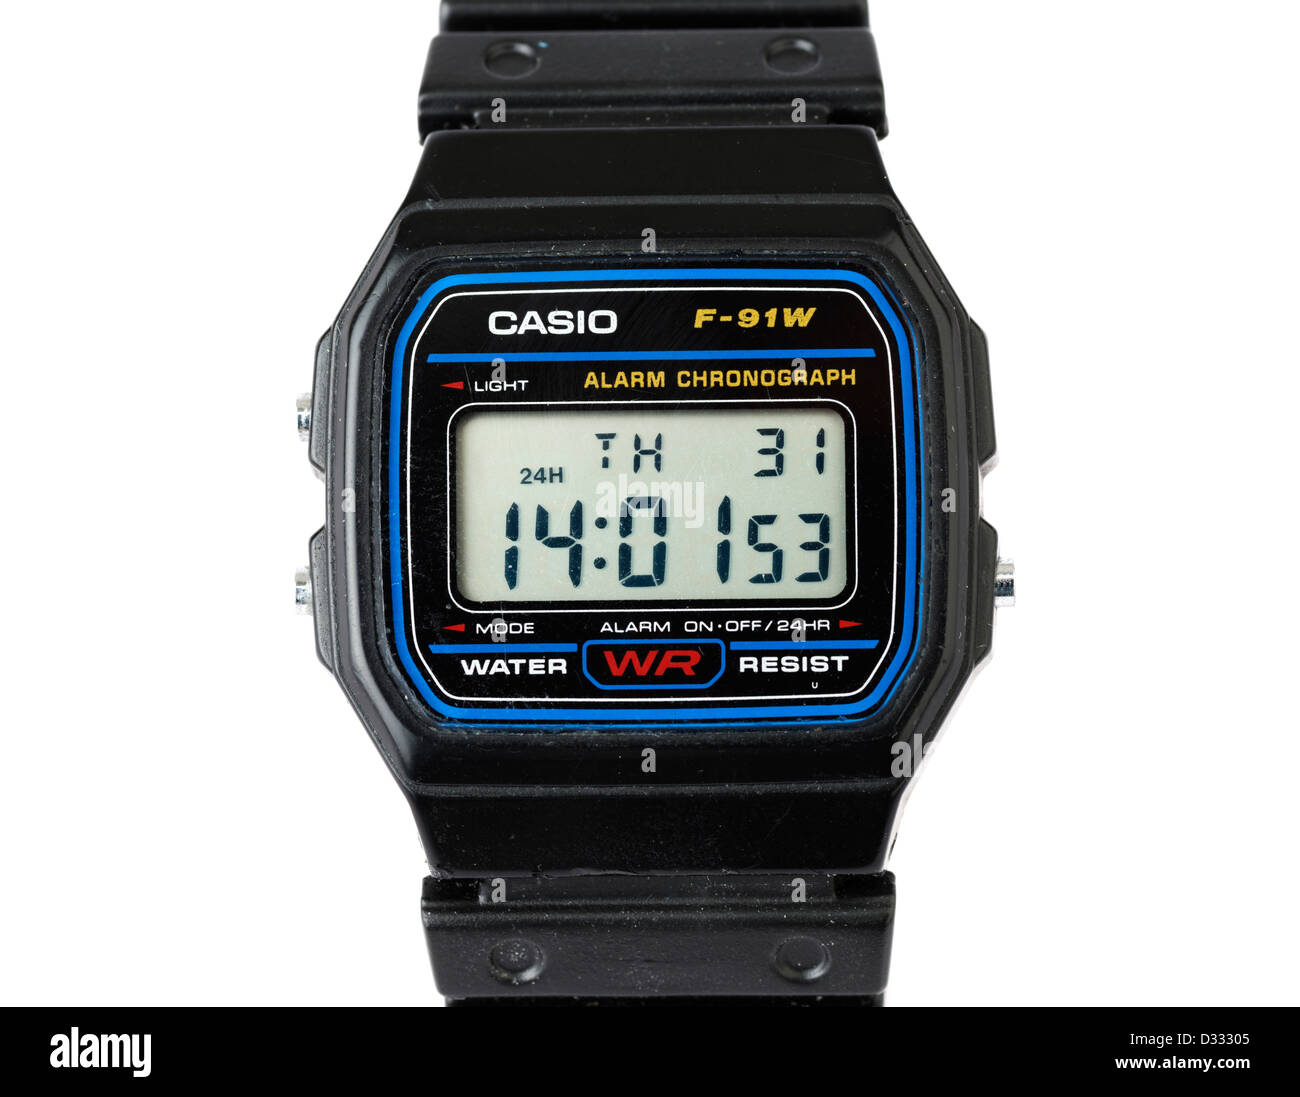 Casio digital wristwatch - Stock Image